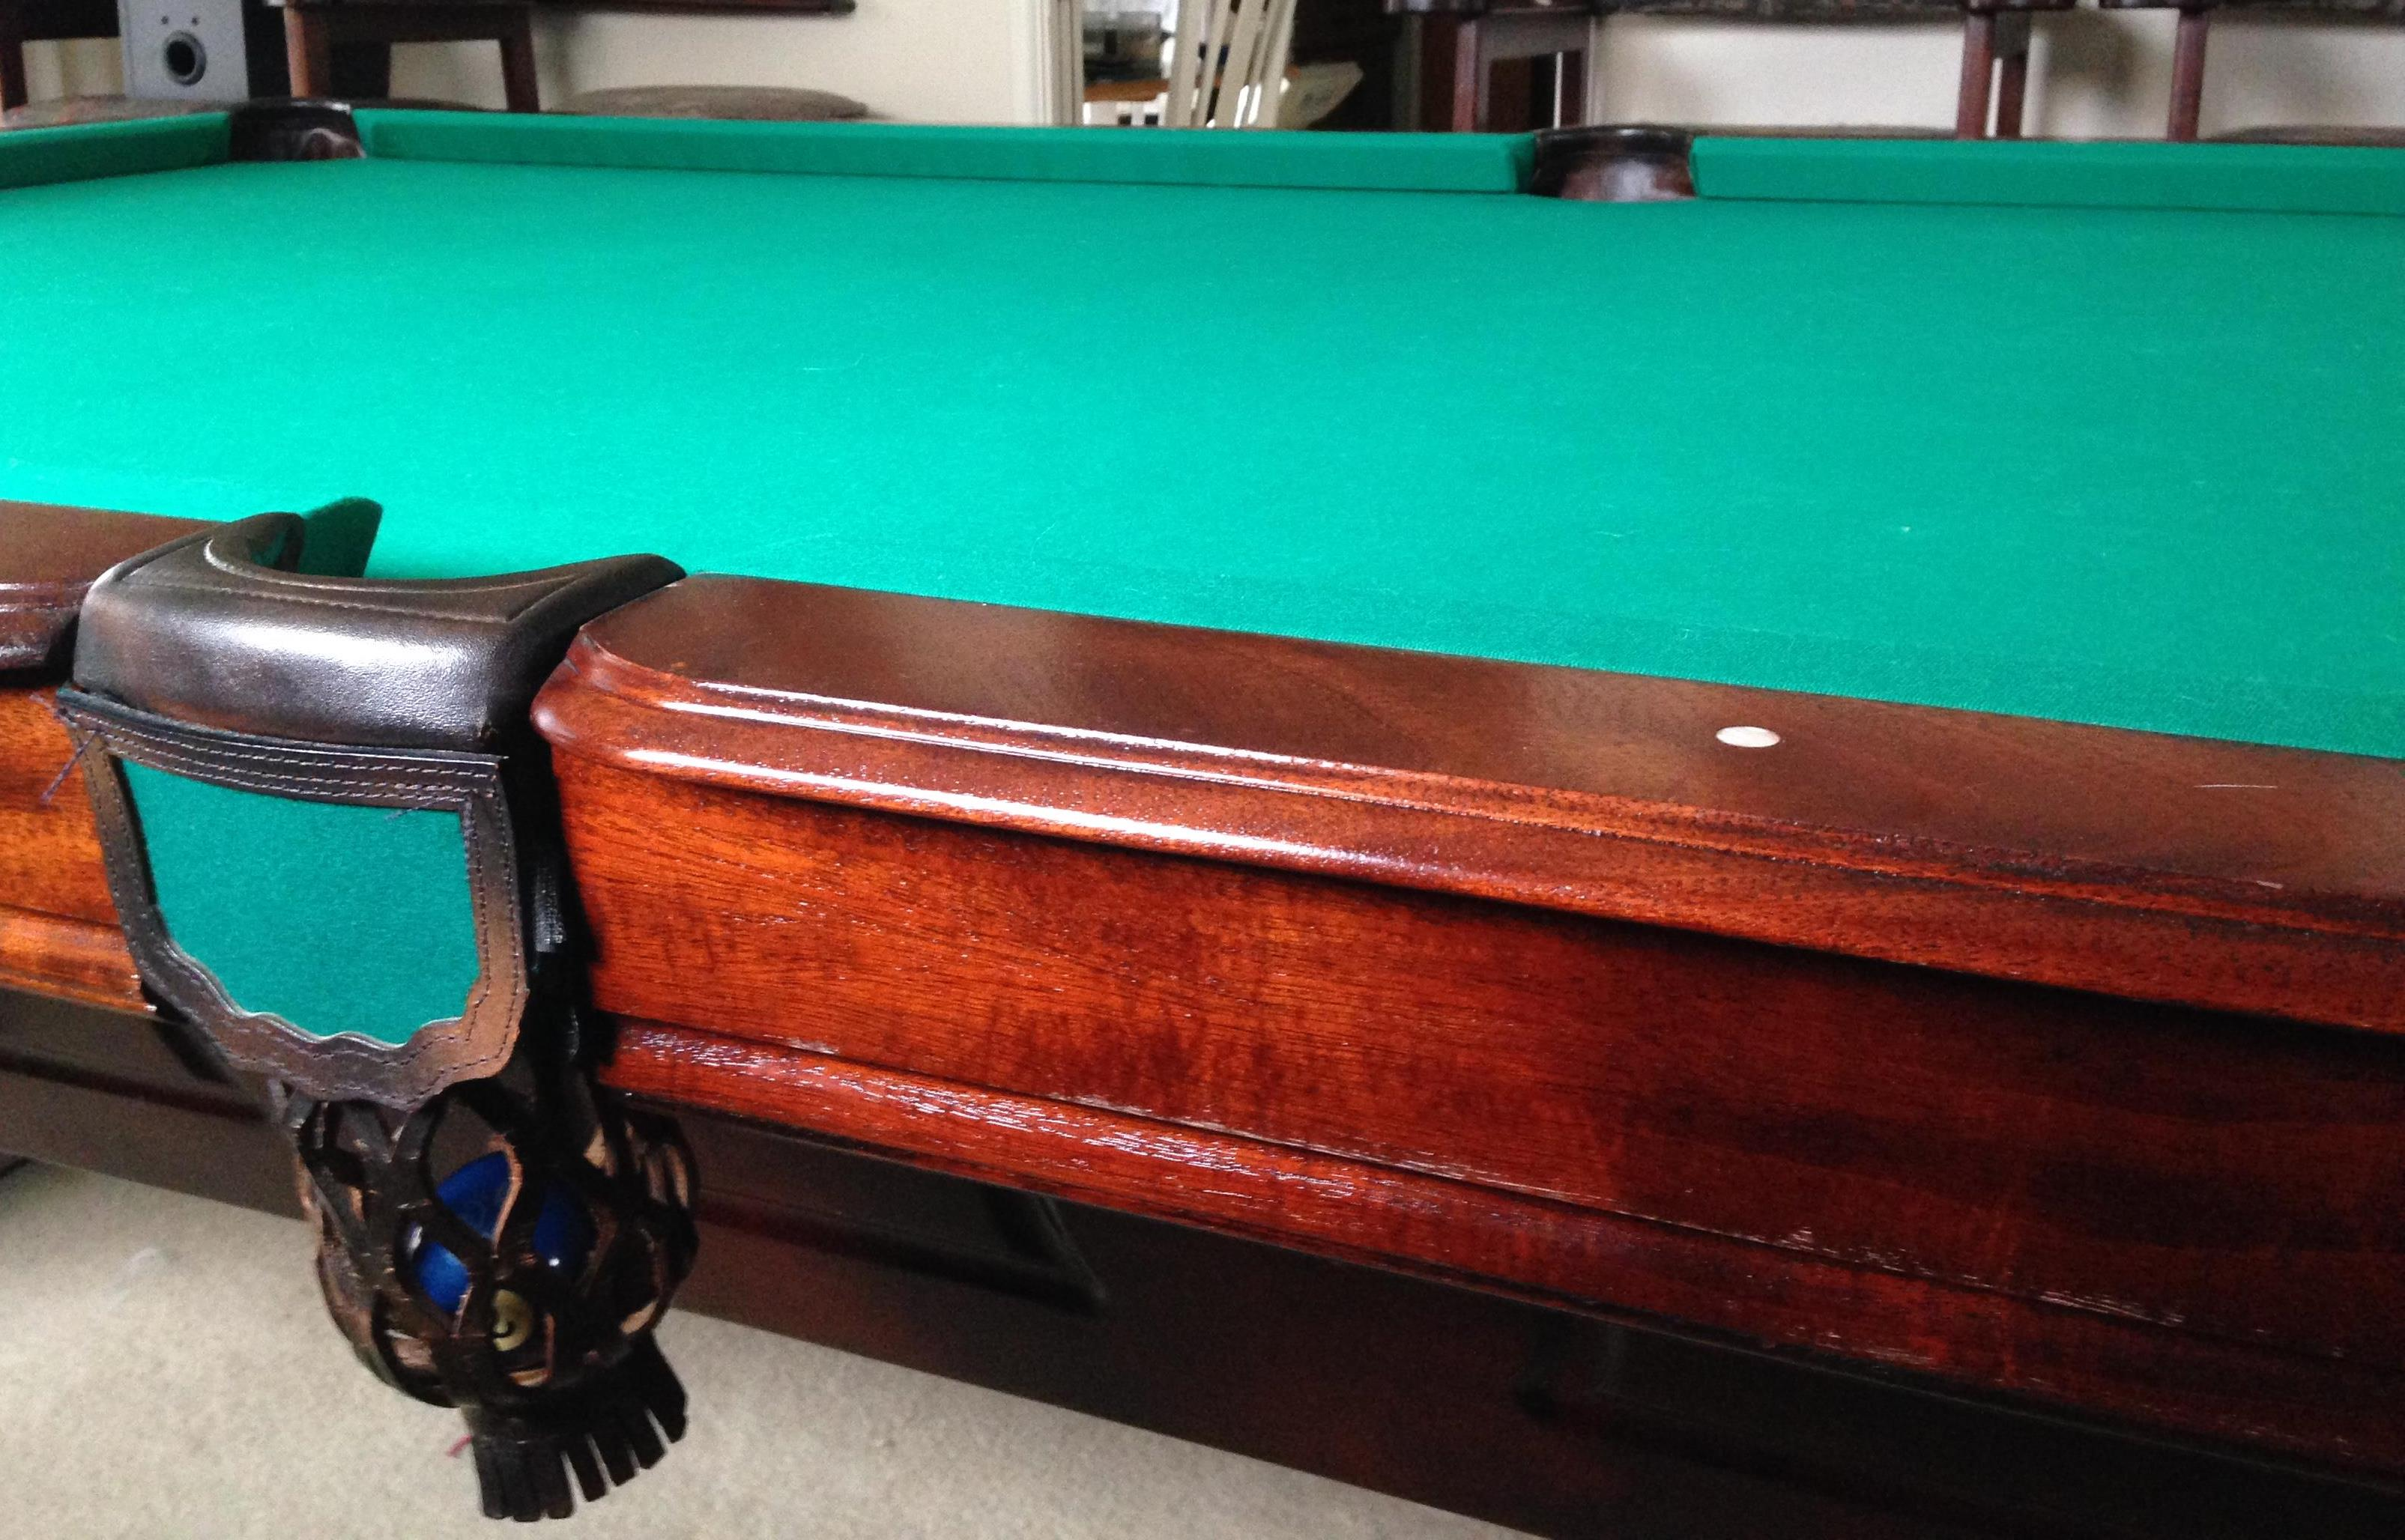 9 Foot World of Leisure Billiard Table for Sale